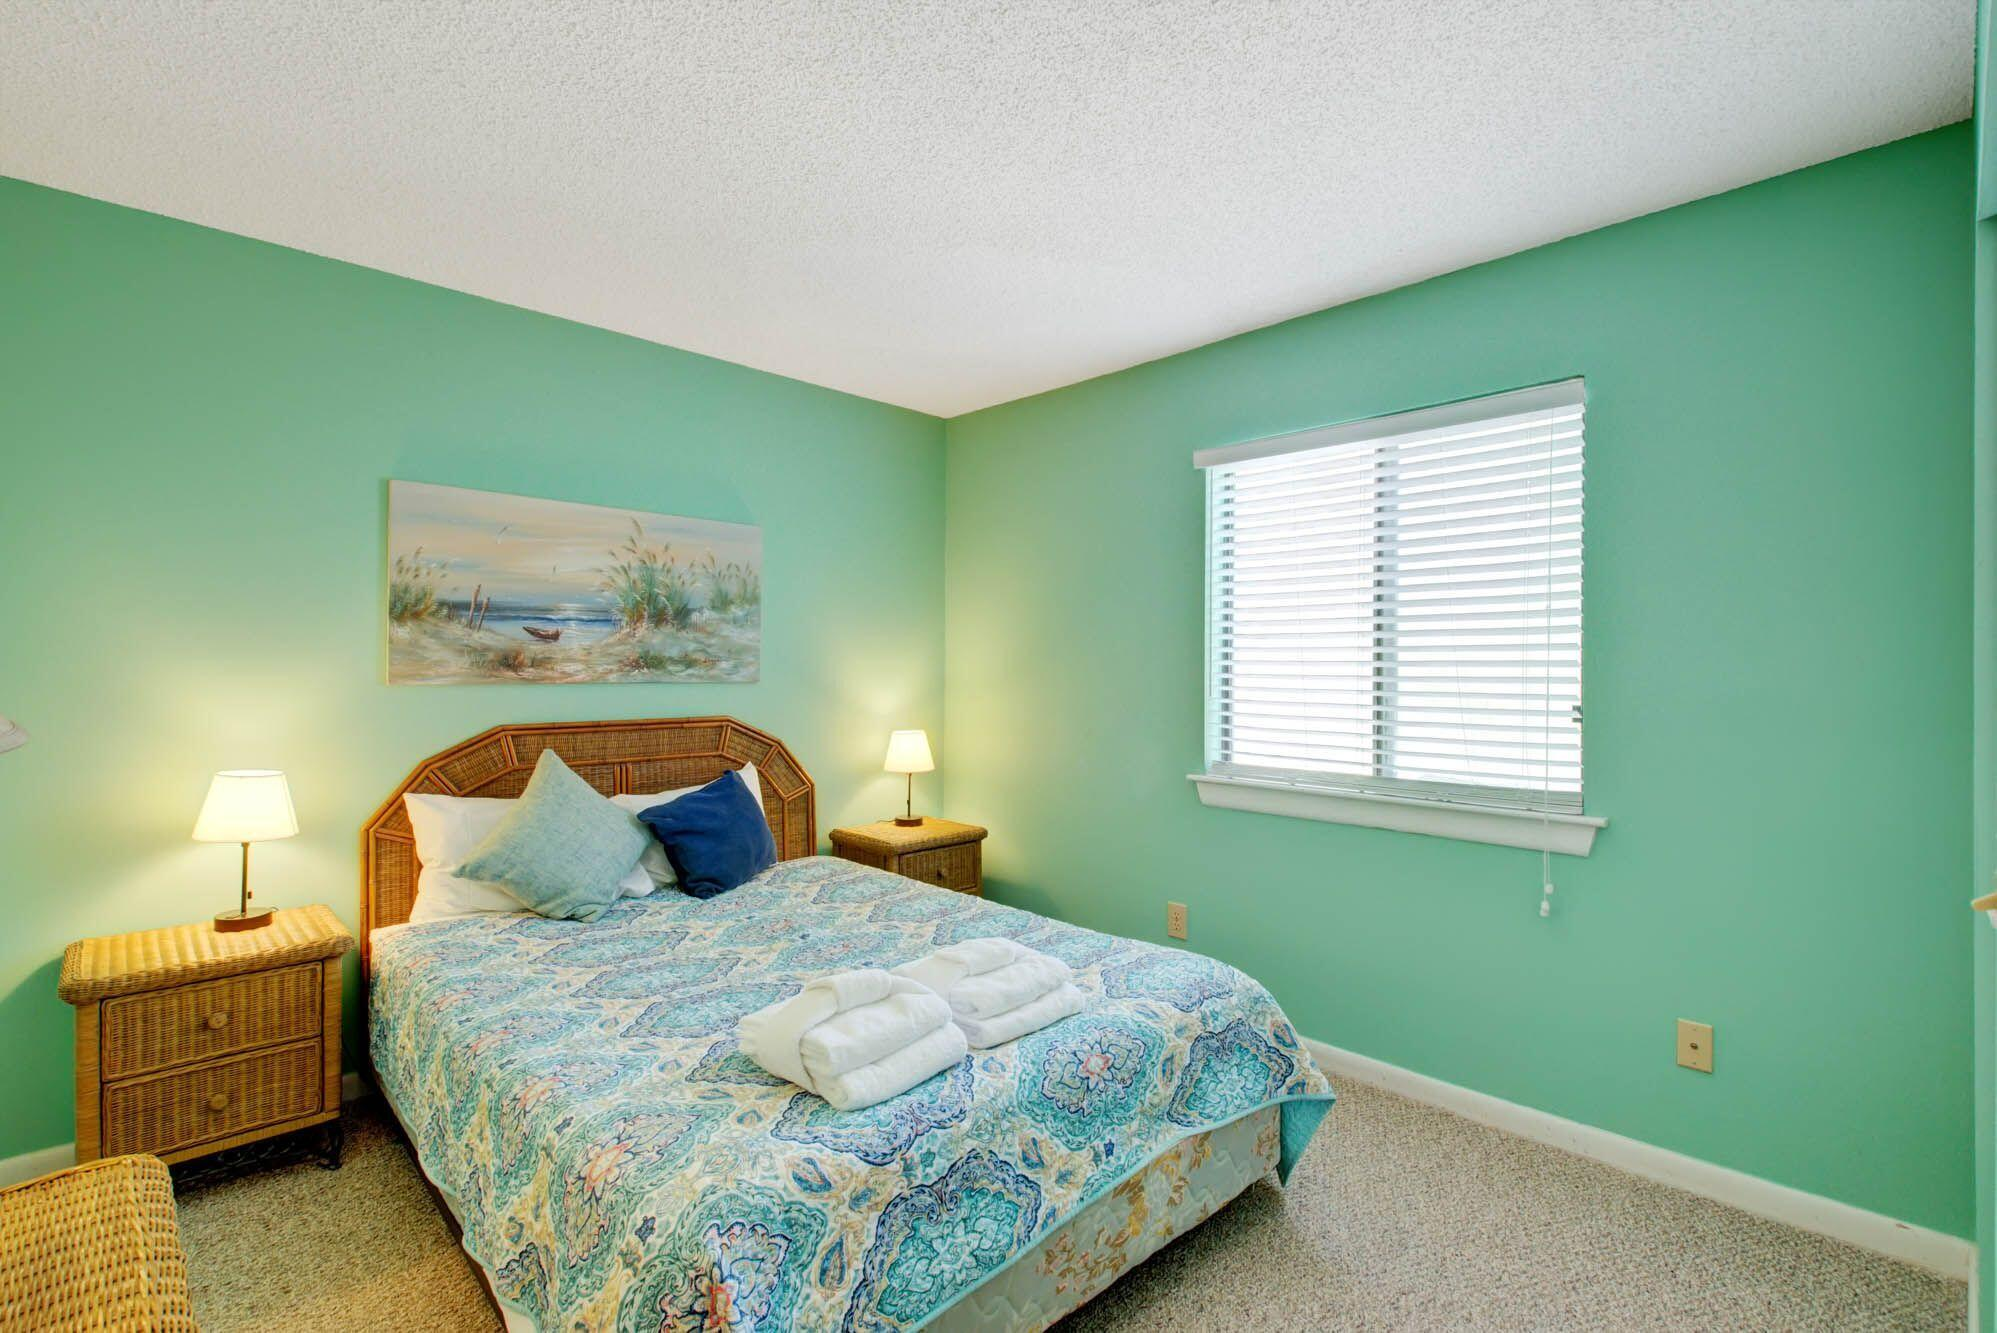 Mariners Cay Homes For Sale - 51 Mariners Cay, Folly Beach, SC - 33